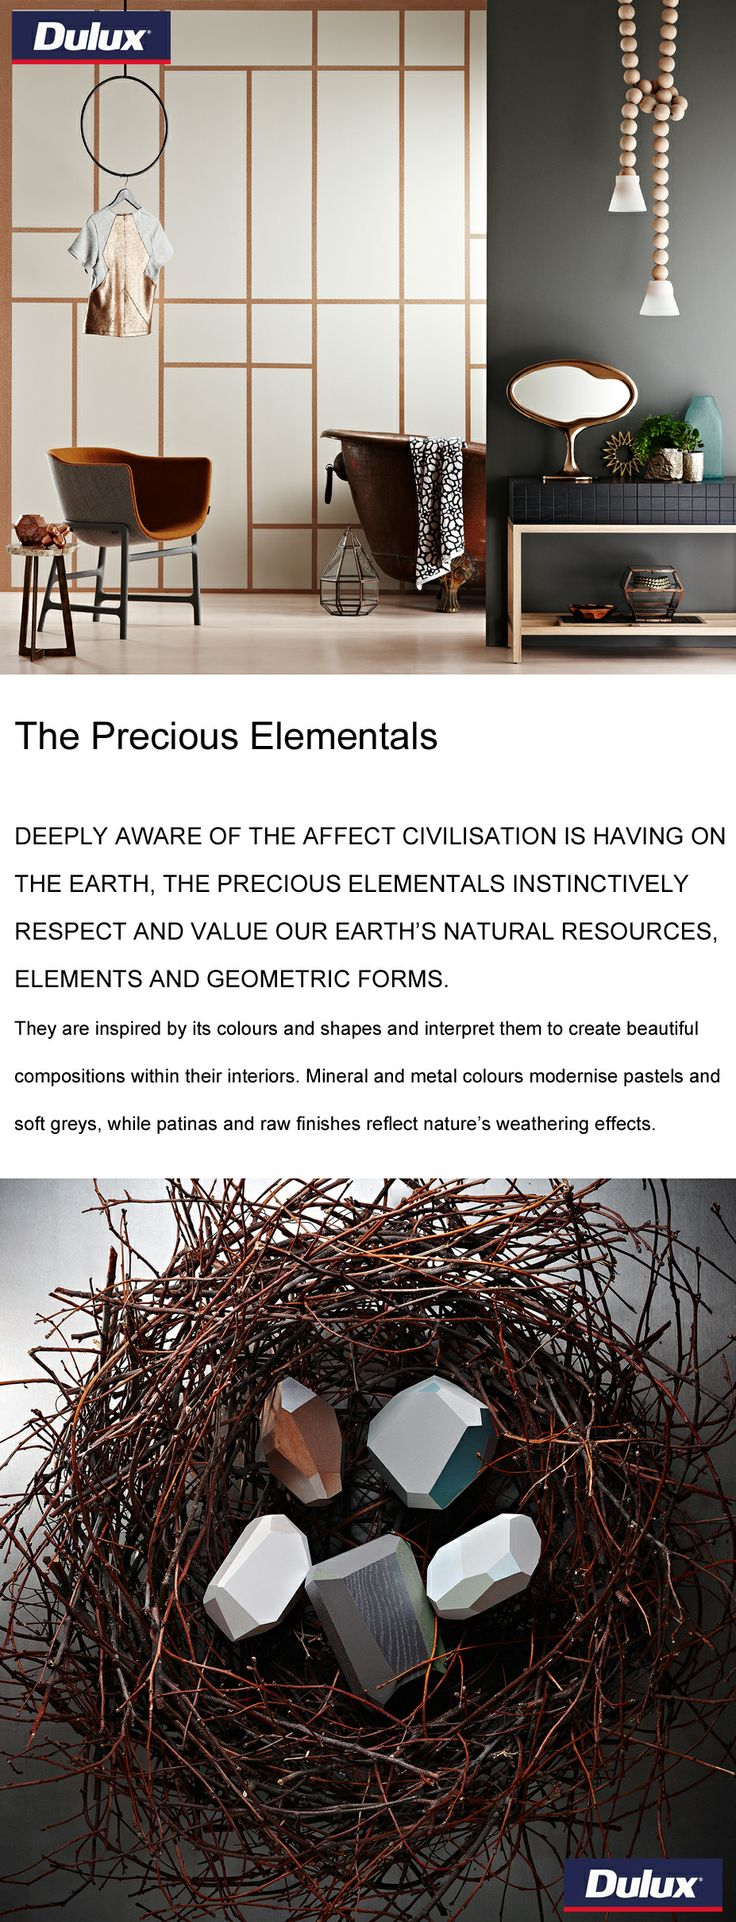 """""""The Precious Elementals"""" colour forecast from Dulux for 2014.   www.lahood.co.nz"""